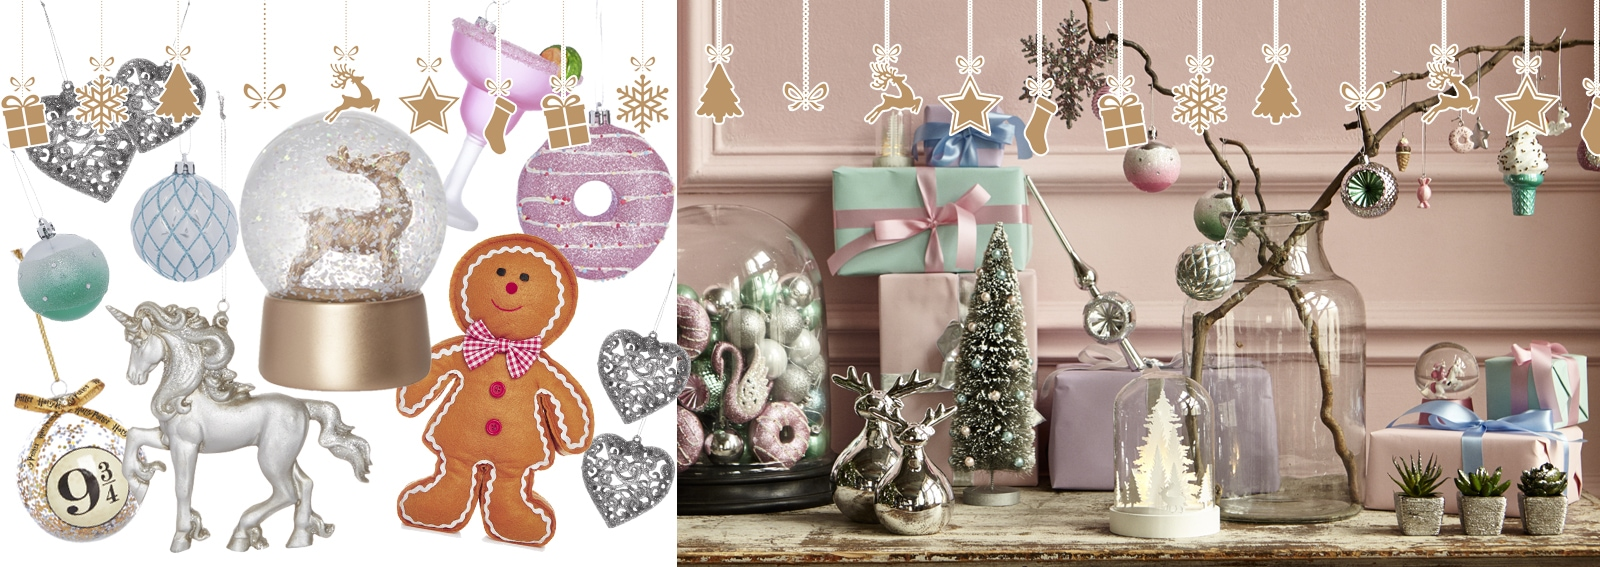 cover-primark-home-natale-2017-desktop